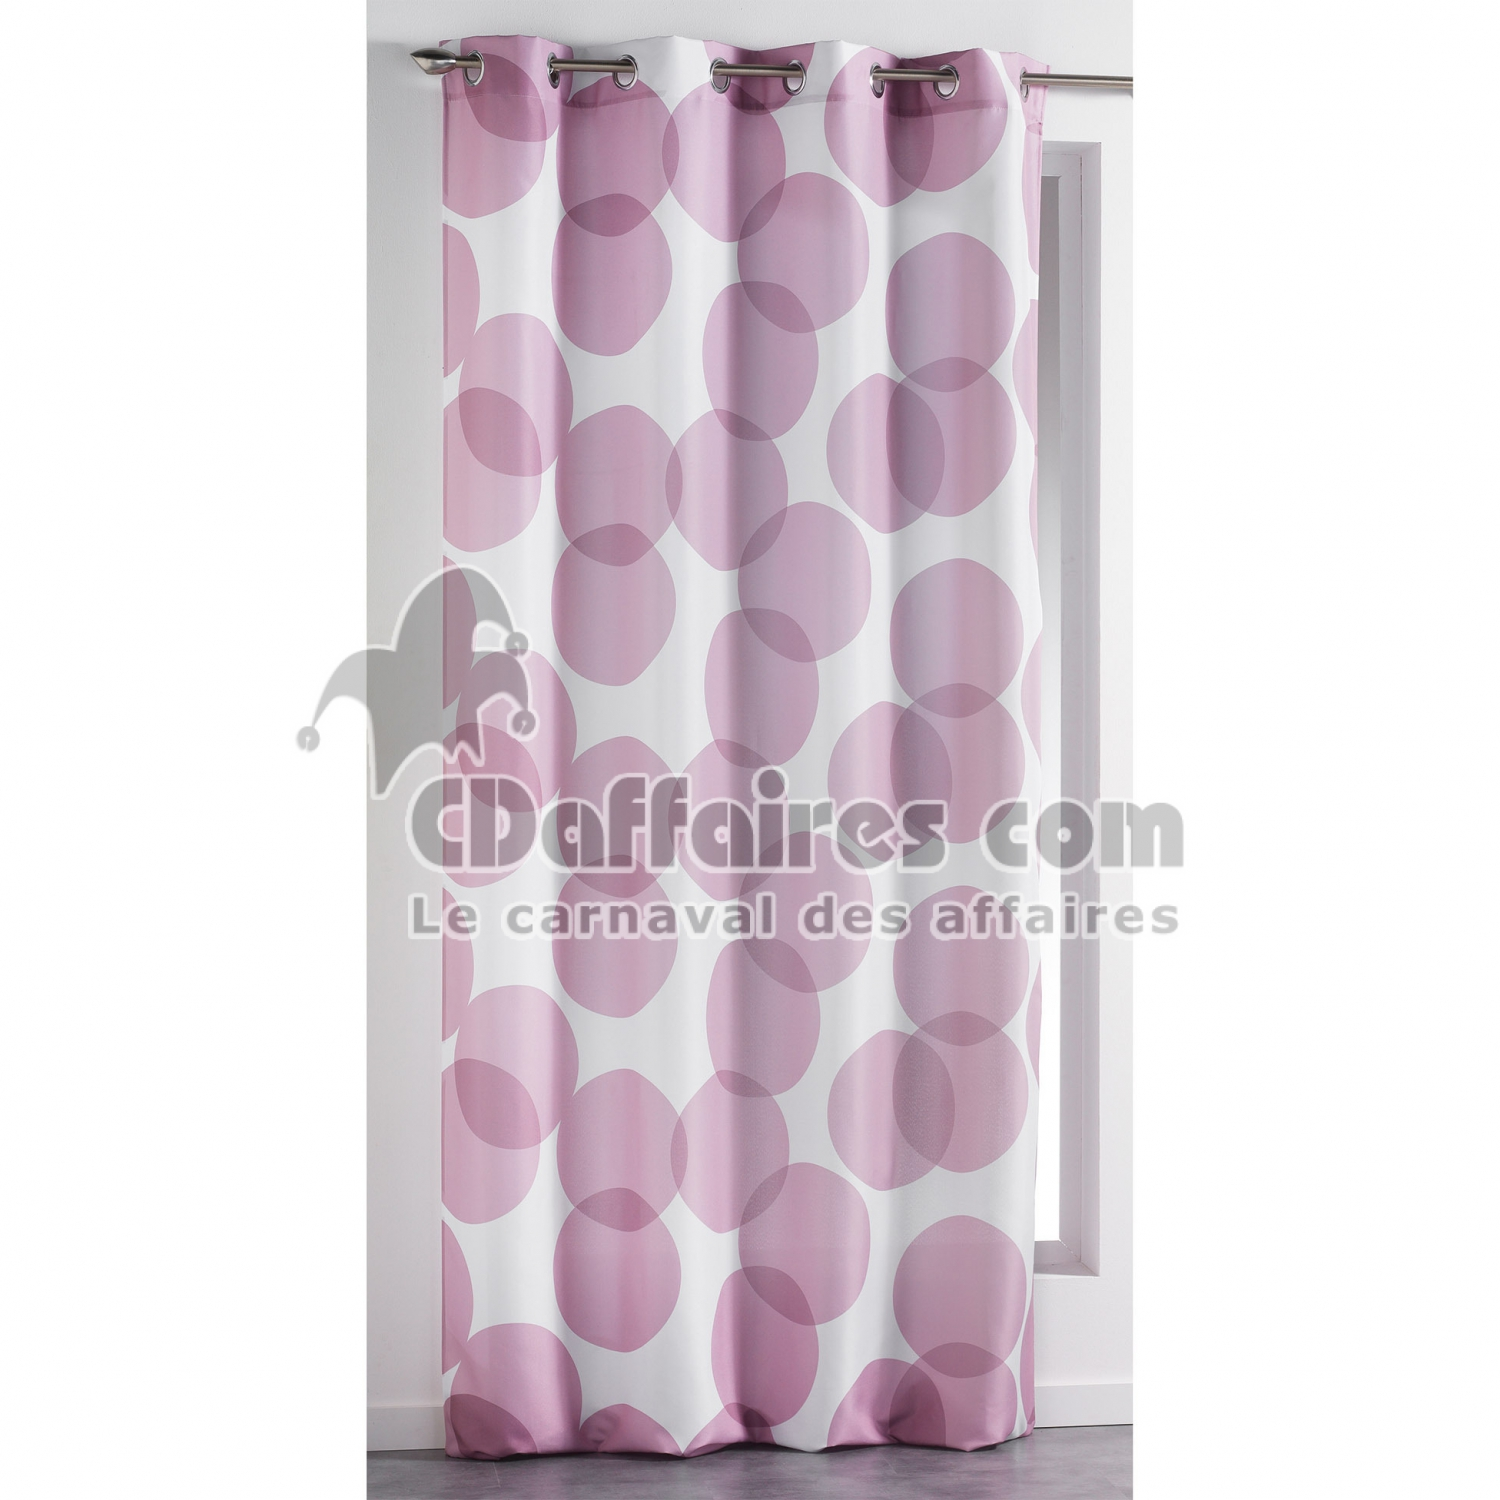 rideau a oeillets 140 x 260 cm polyester imprime reflecto rose cdaffaires. Black Bedroom Furniture Sets. Home Design Ideas